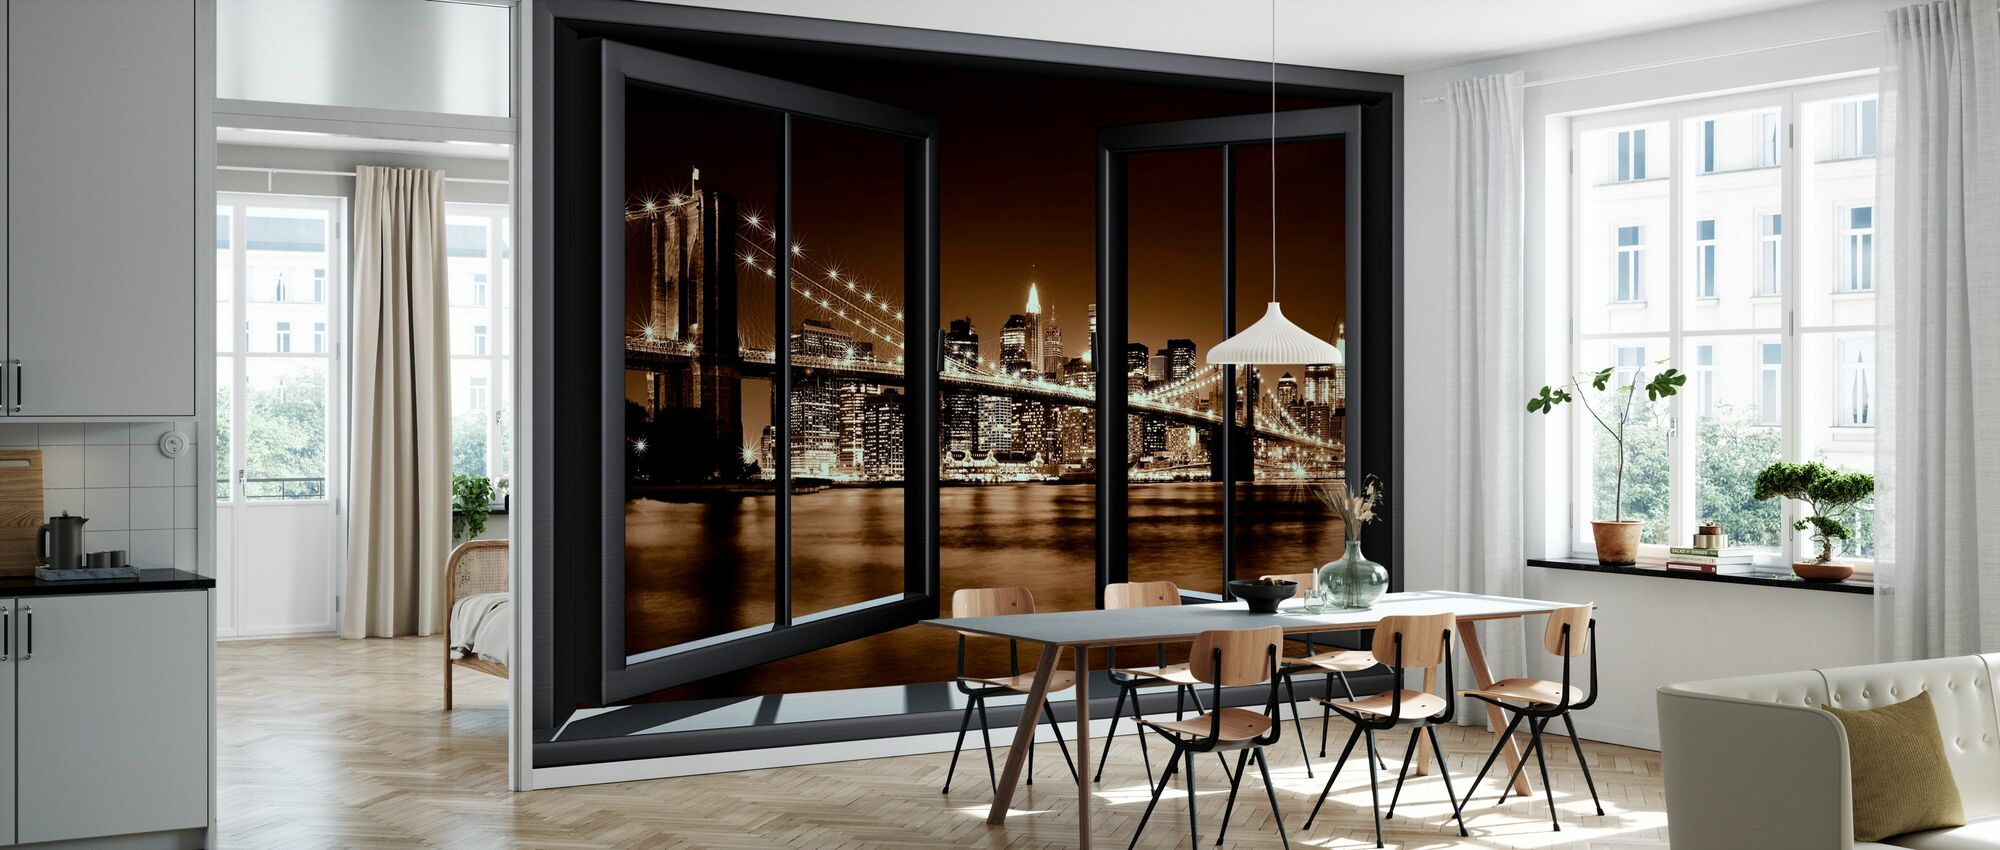 Brooklyn Bridge through Window - Yellow - Wallpaper - Kitchen